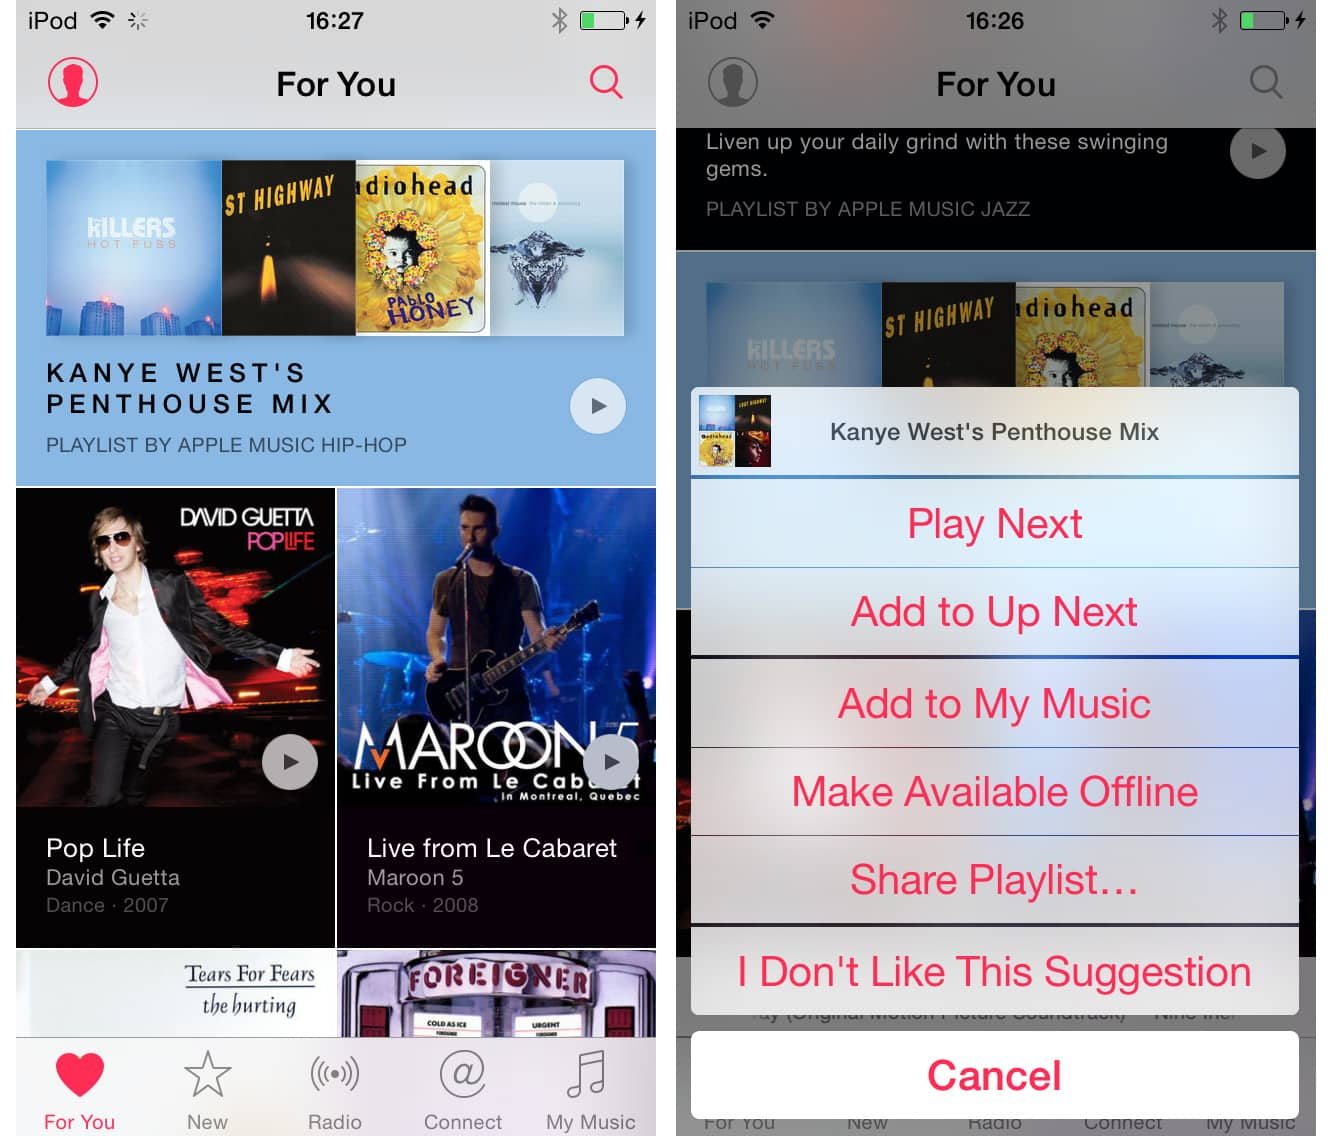 Disliking 'For You' suggestions in Apple Music